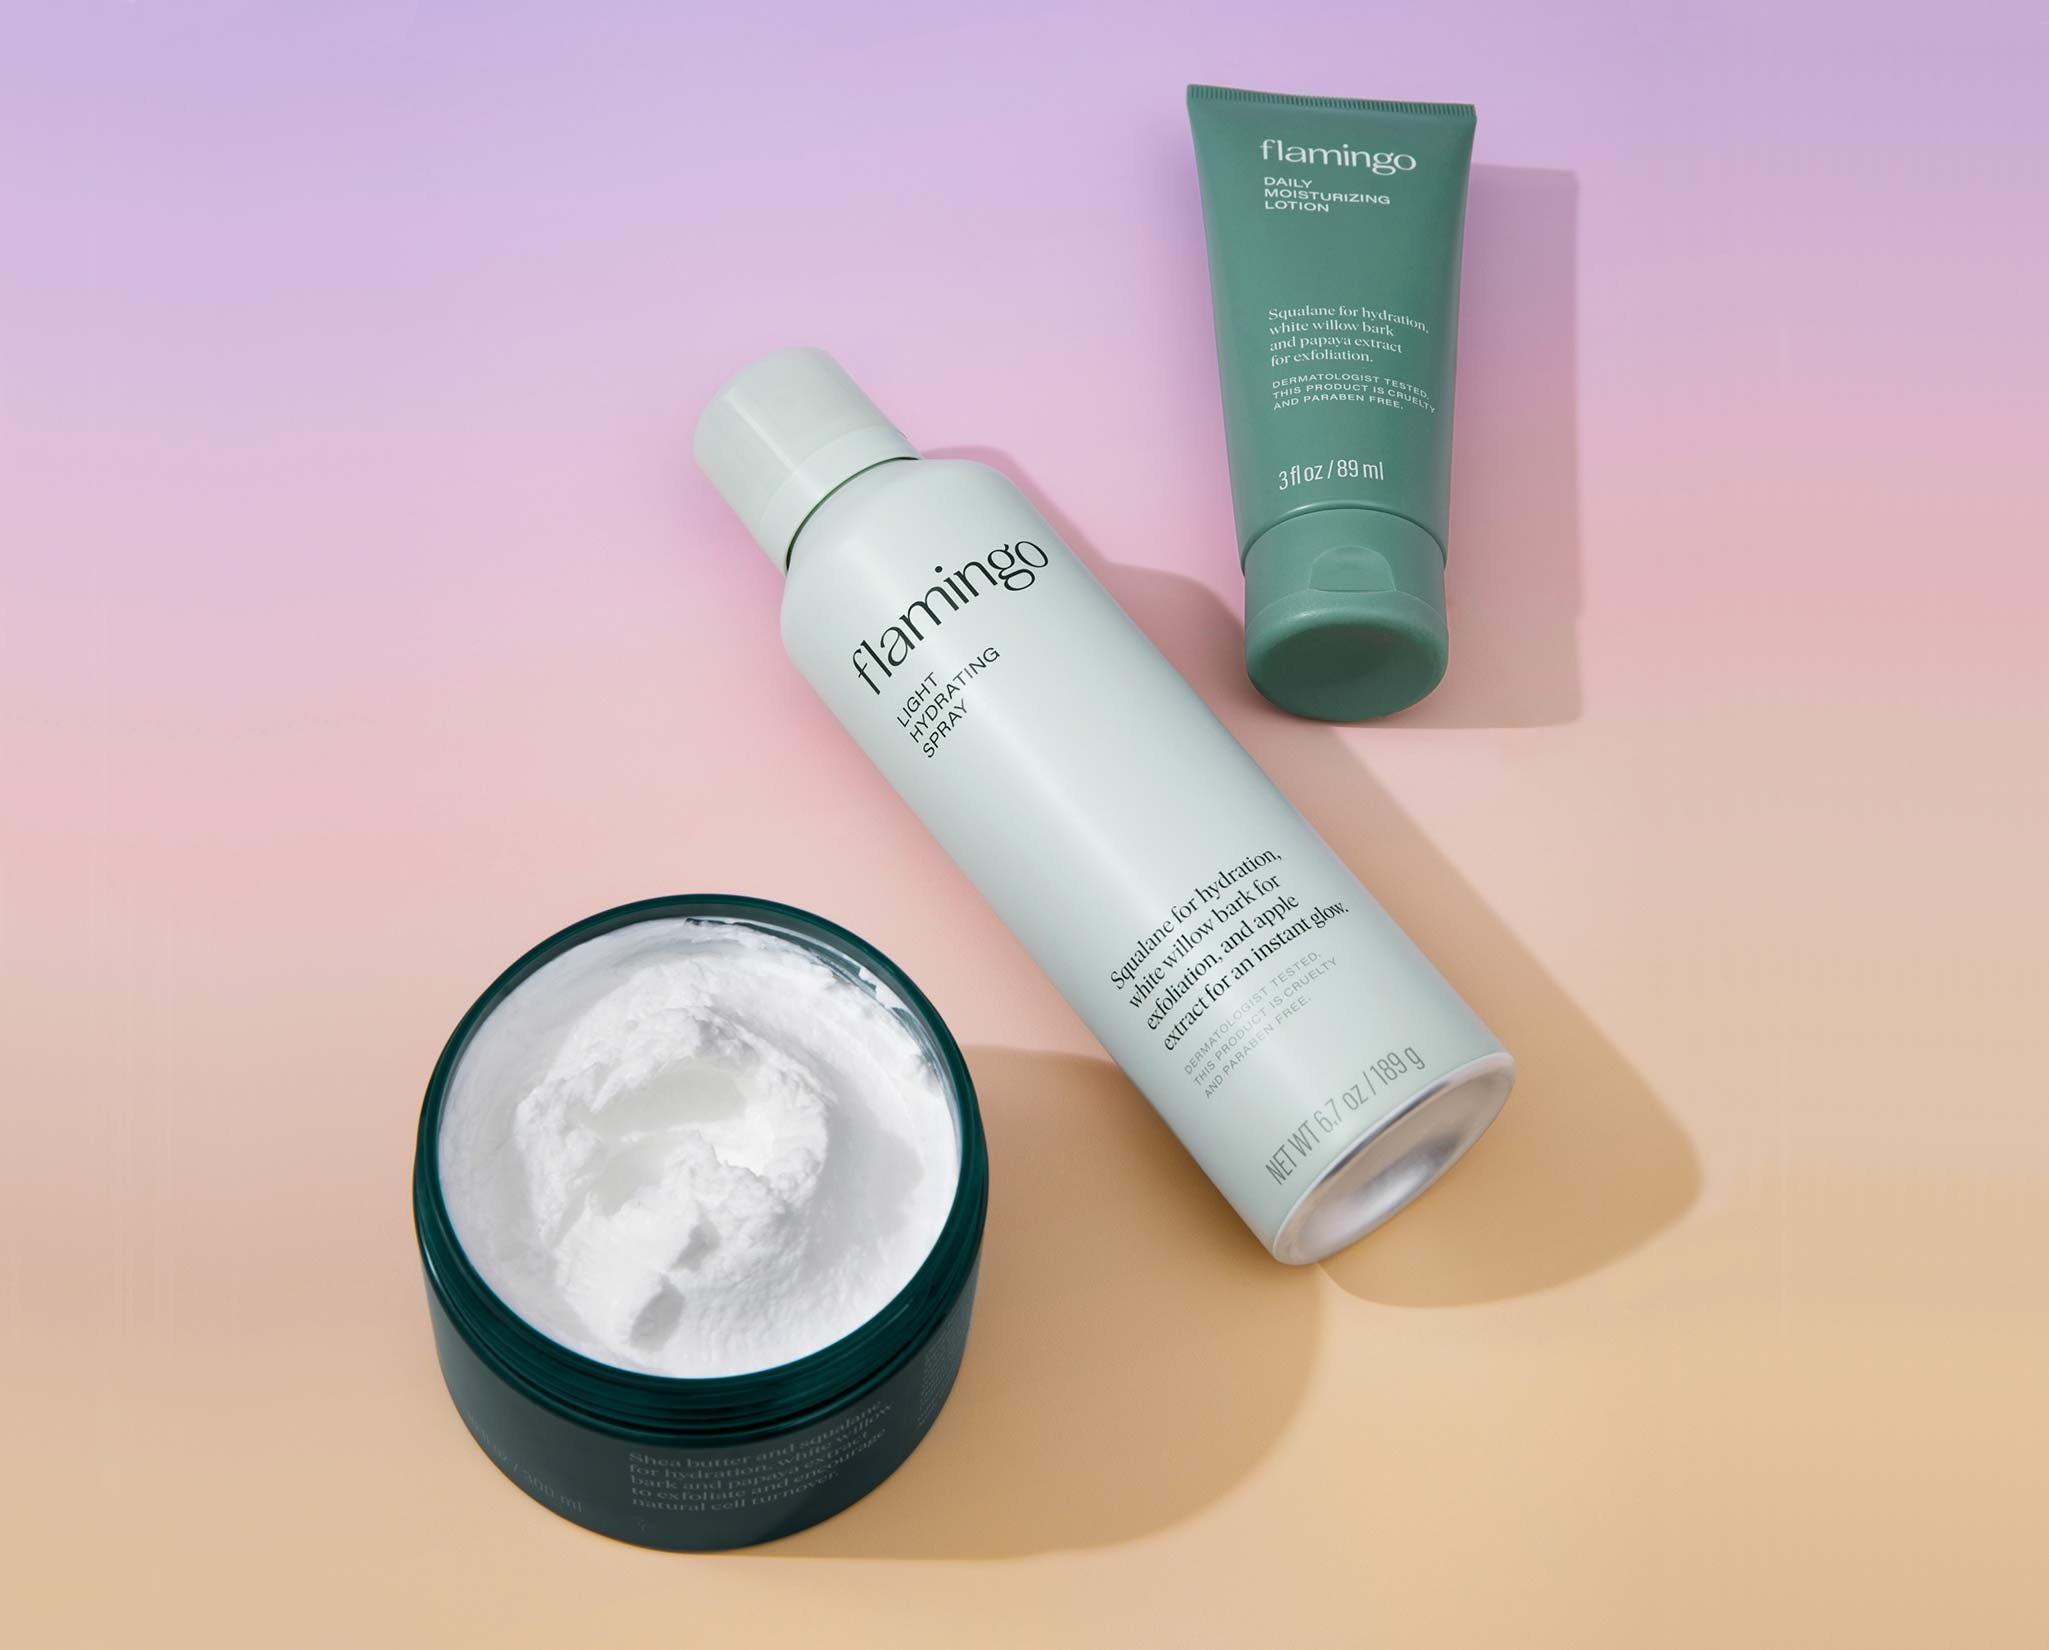 Deep nourishing cream, light hydrating spray, and daily moisturizing loion laying next to one another